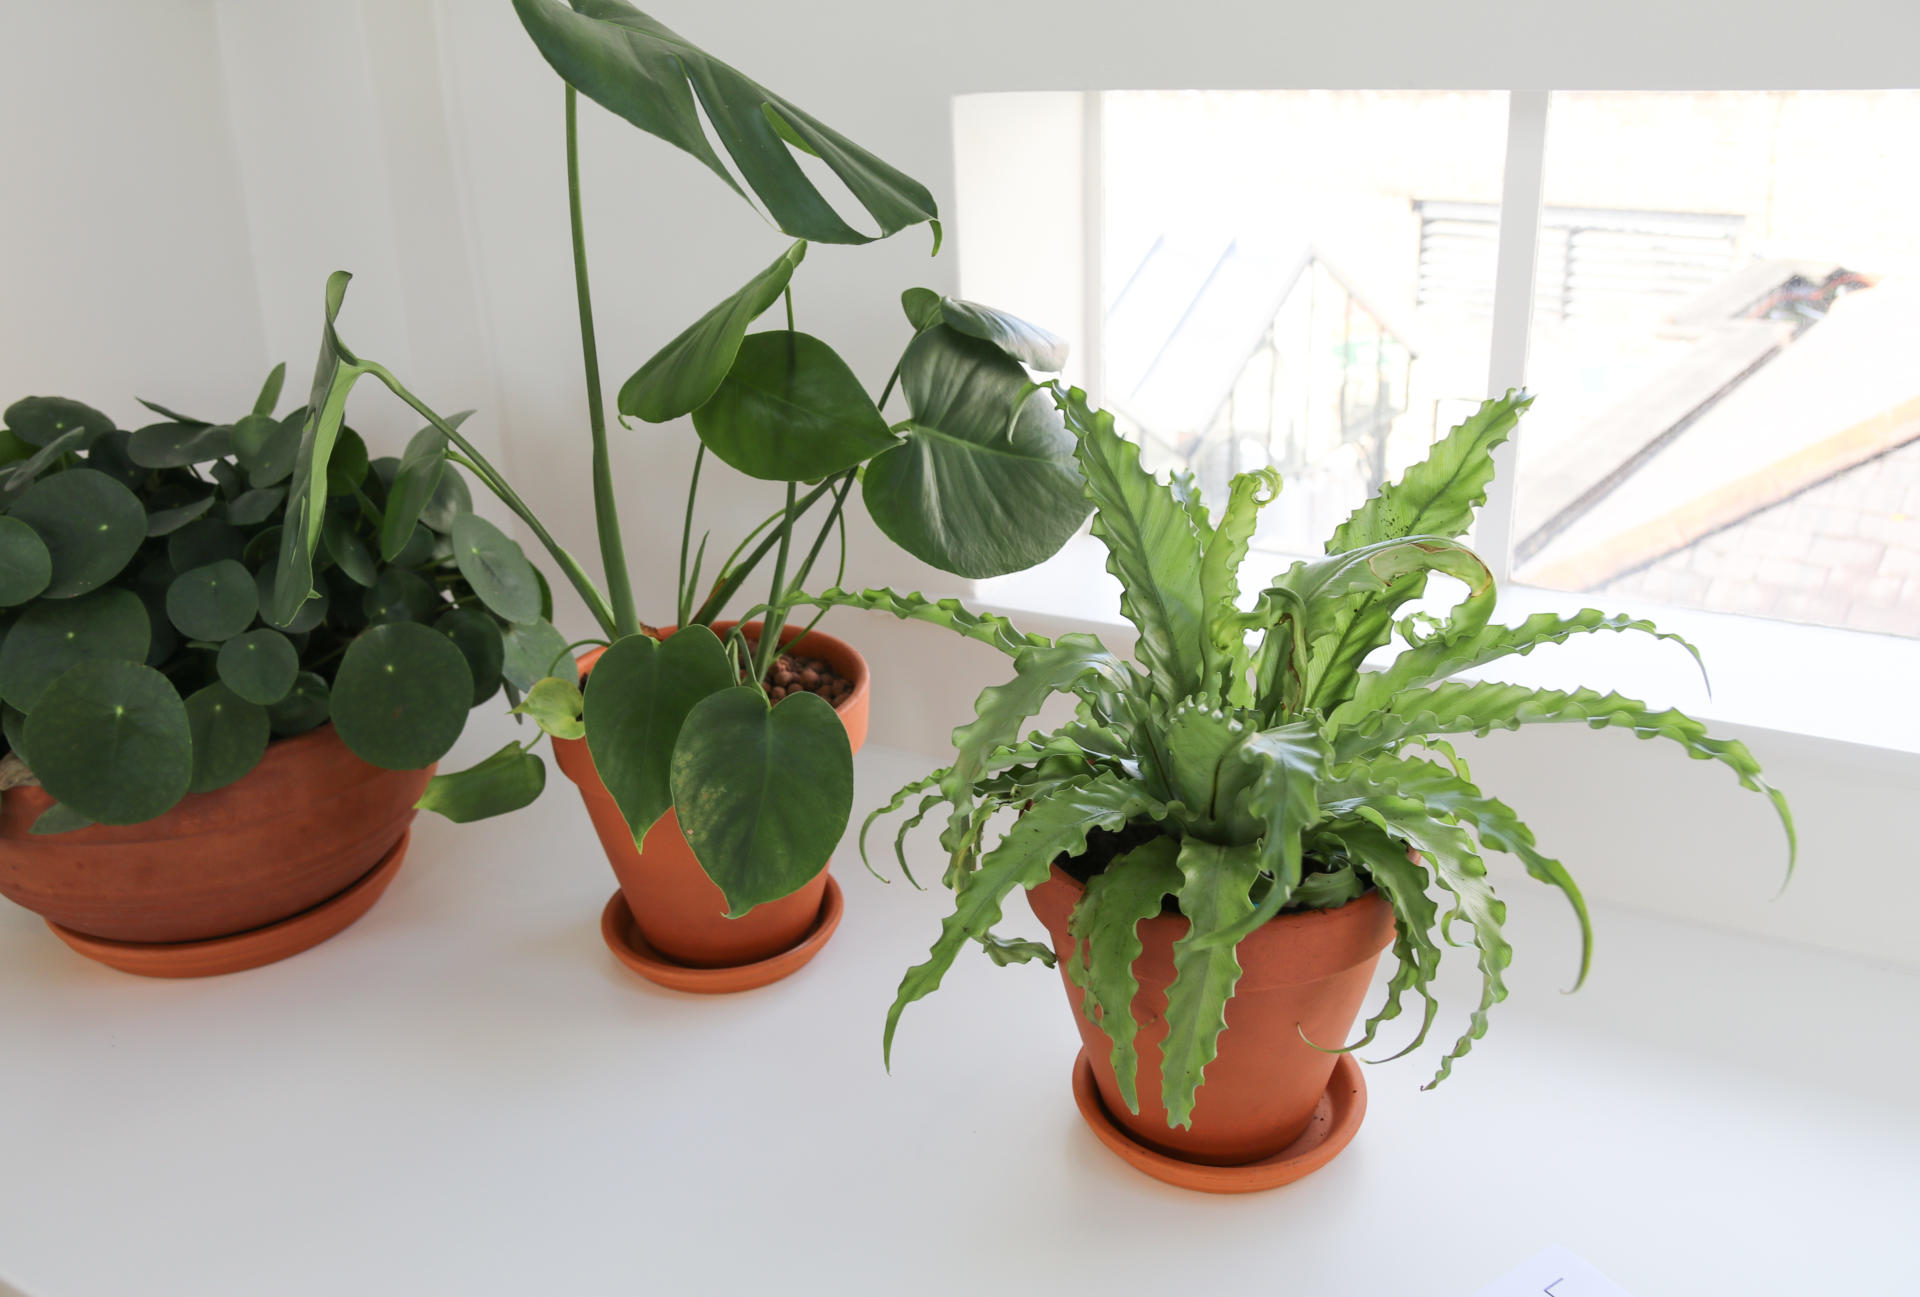 How Plants Can Increase Productivity in the Workplace | LABS on order birds of paradise plant, zamiifolia house plant, spider house plant, fig house plant, houseplants plant, croton house plant, banana house plant, cast iron plant, rubber house plant, hydrangea house plant, peperomia house plant, fern house plant, zi zi plant, arrowhead house plant, umbrella house plant, avocado house plant, eternity plant, house plant identification succulent plant,